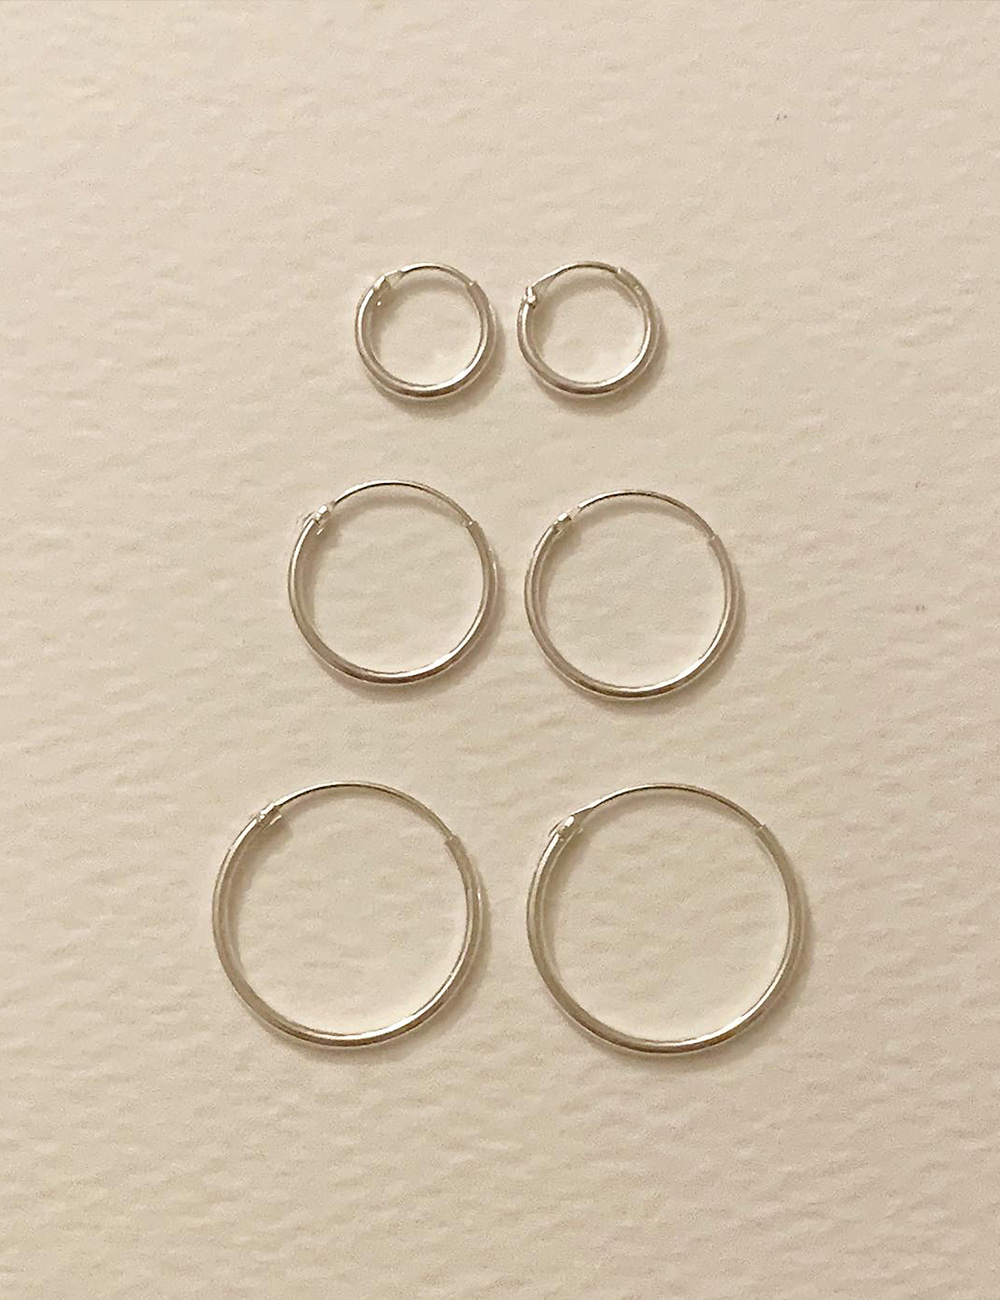 (silver 92.5) Pipe earring / 12mm,15mm,18mm